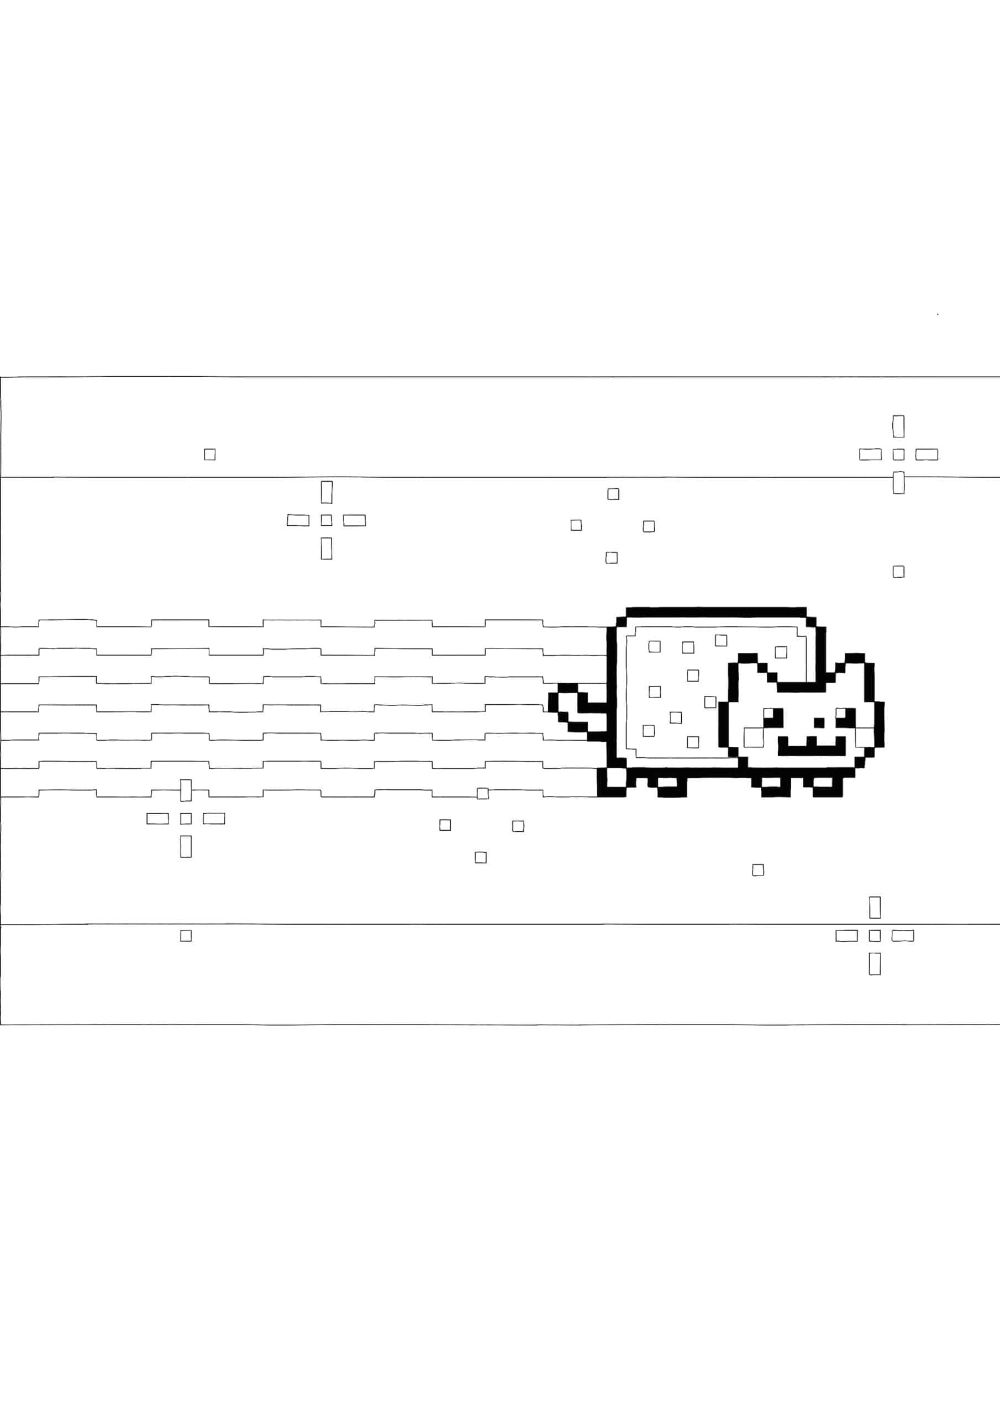 Nyan Cat Coloring Pages - 22 Free Coloring Sheets (220220)  Cat